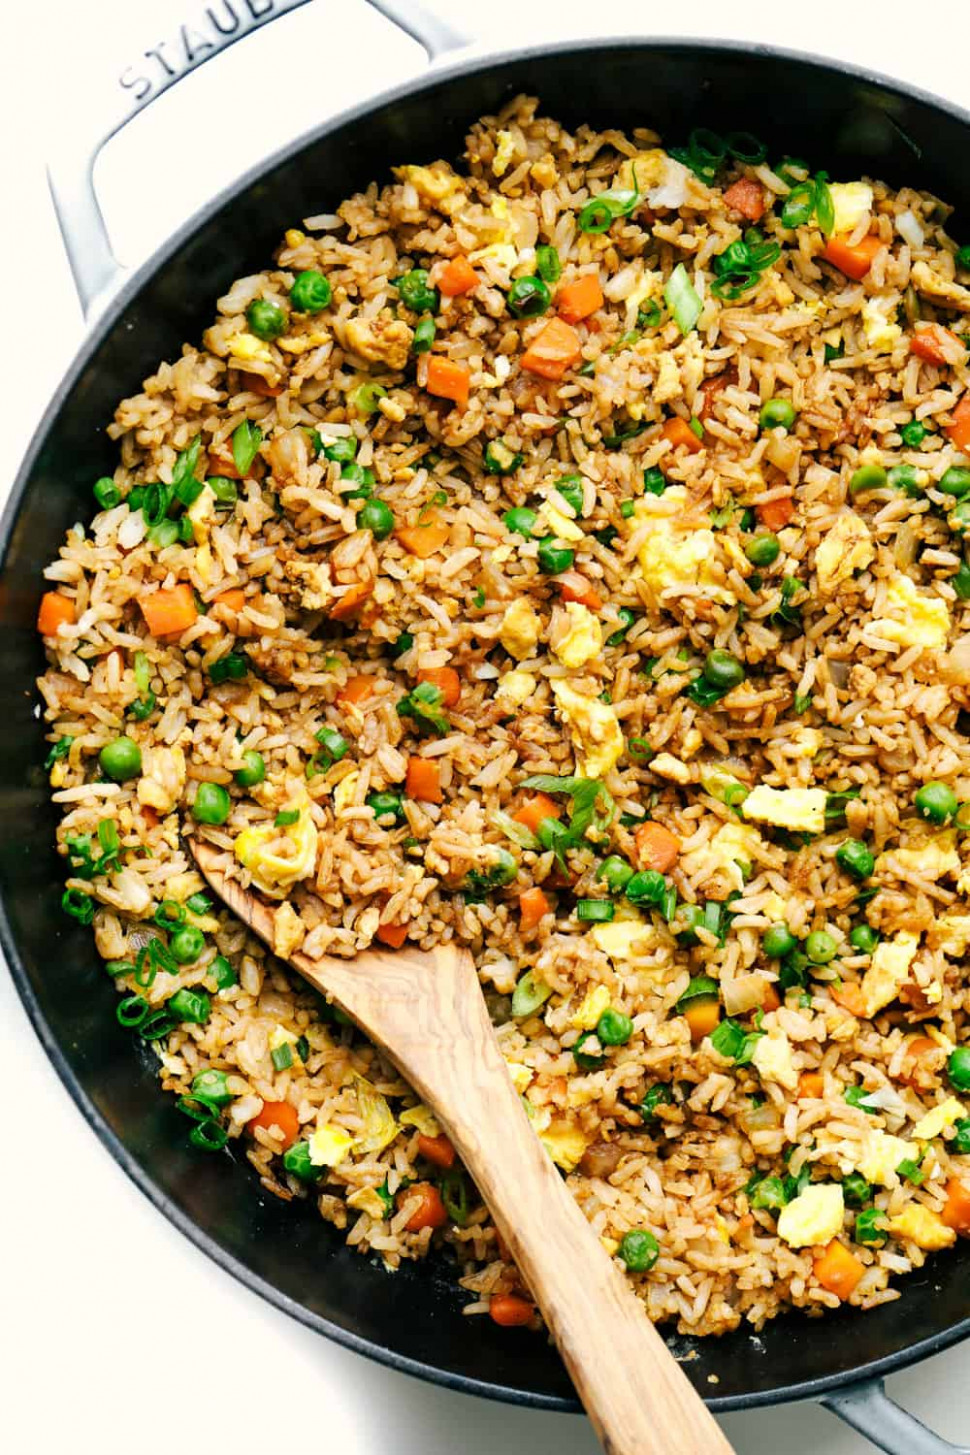 Easy Fried rice - recipes easy vegetarian rice